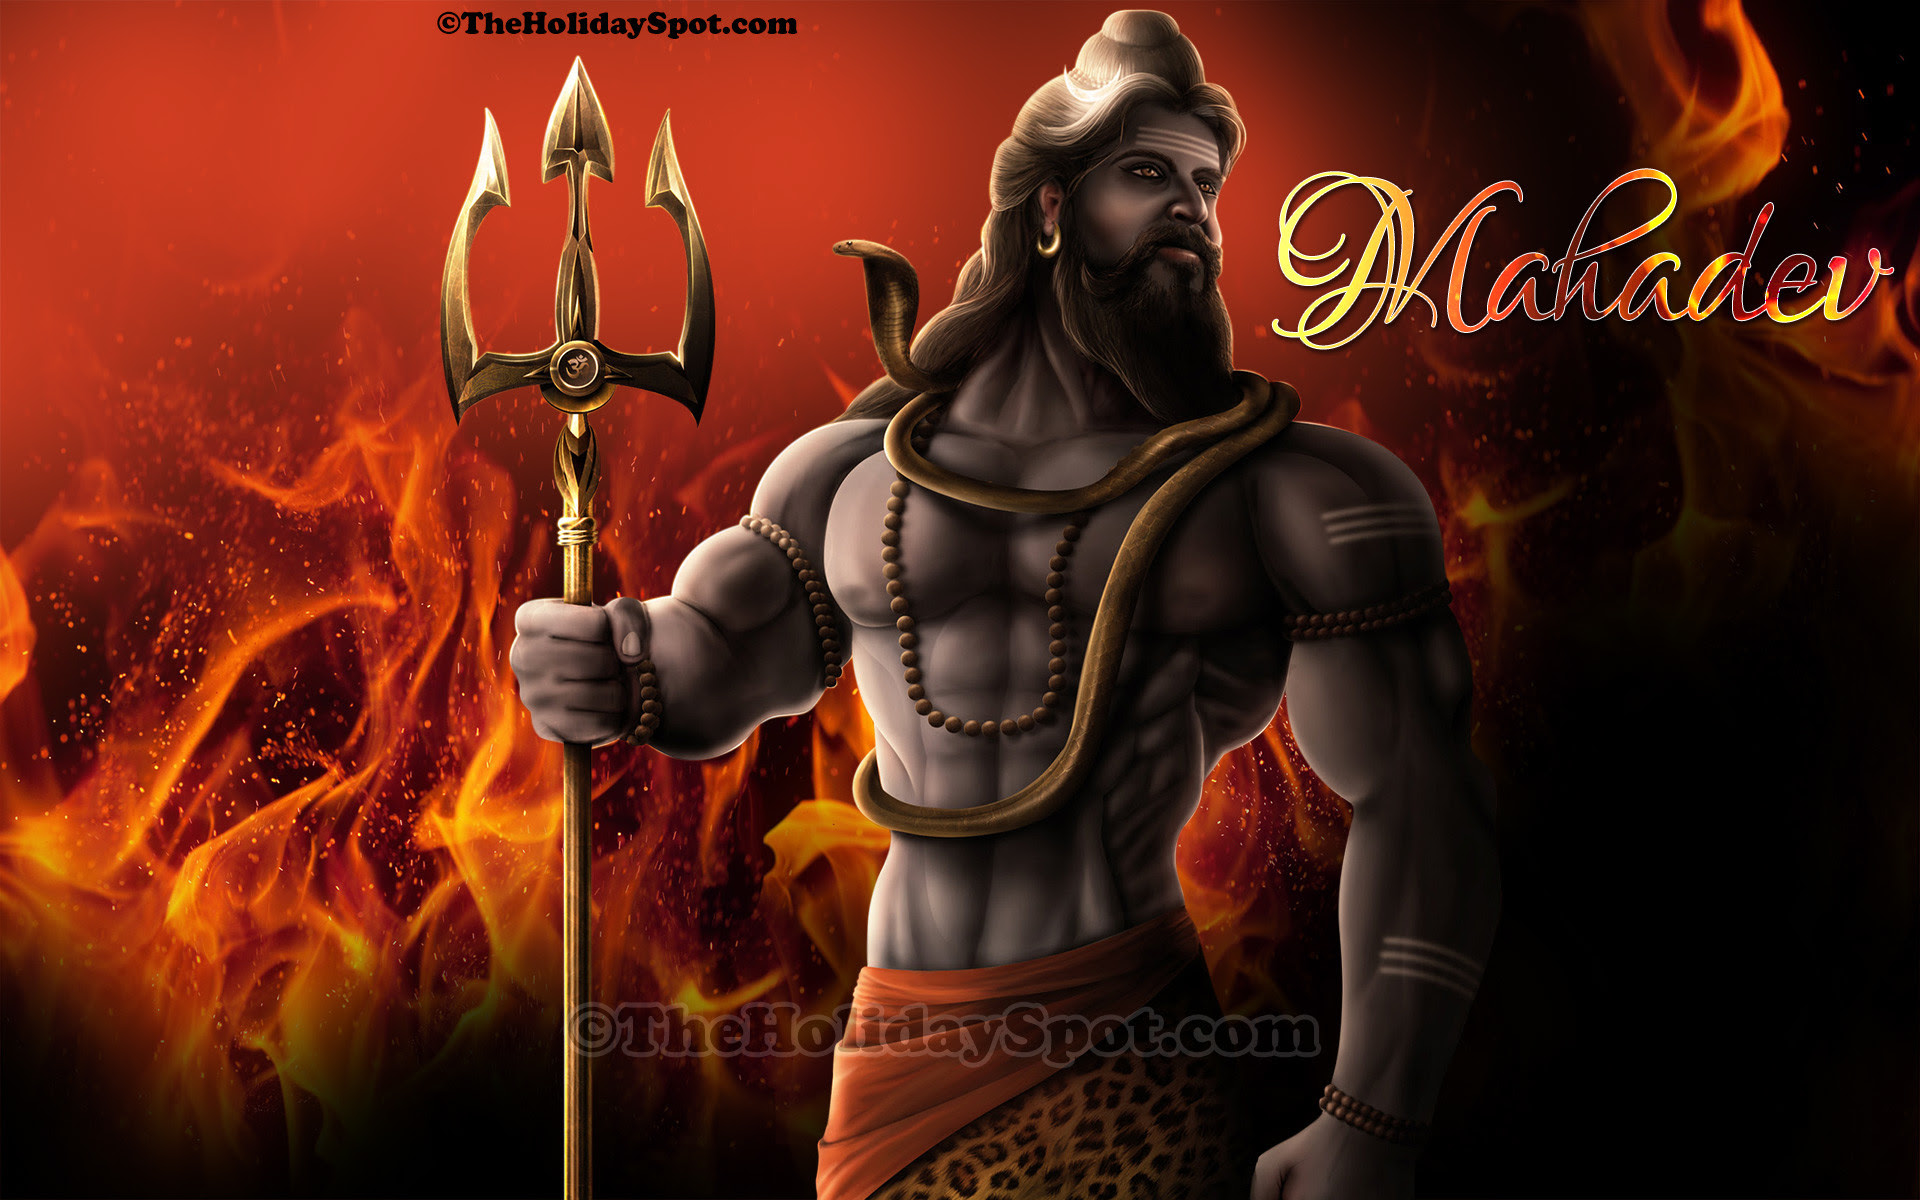 Angry Lord Shiva Hd Wallpapers 1920x1080 Eumolpo Wallpapers